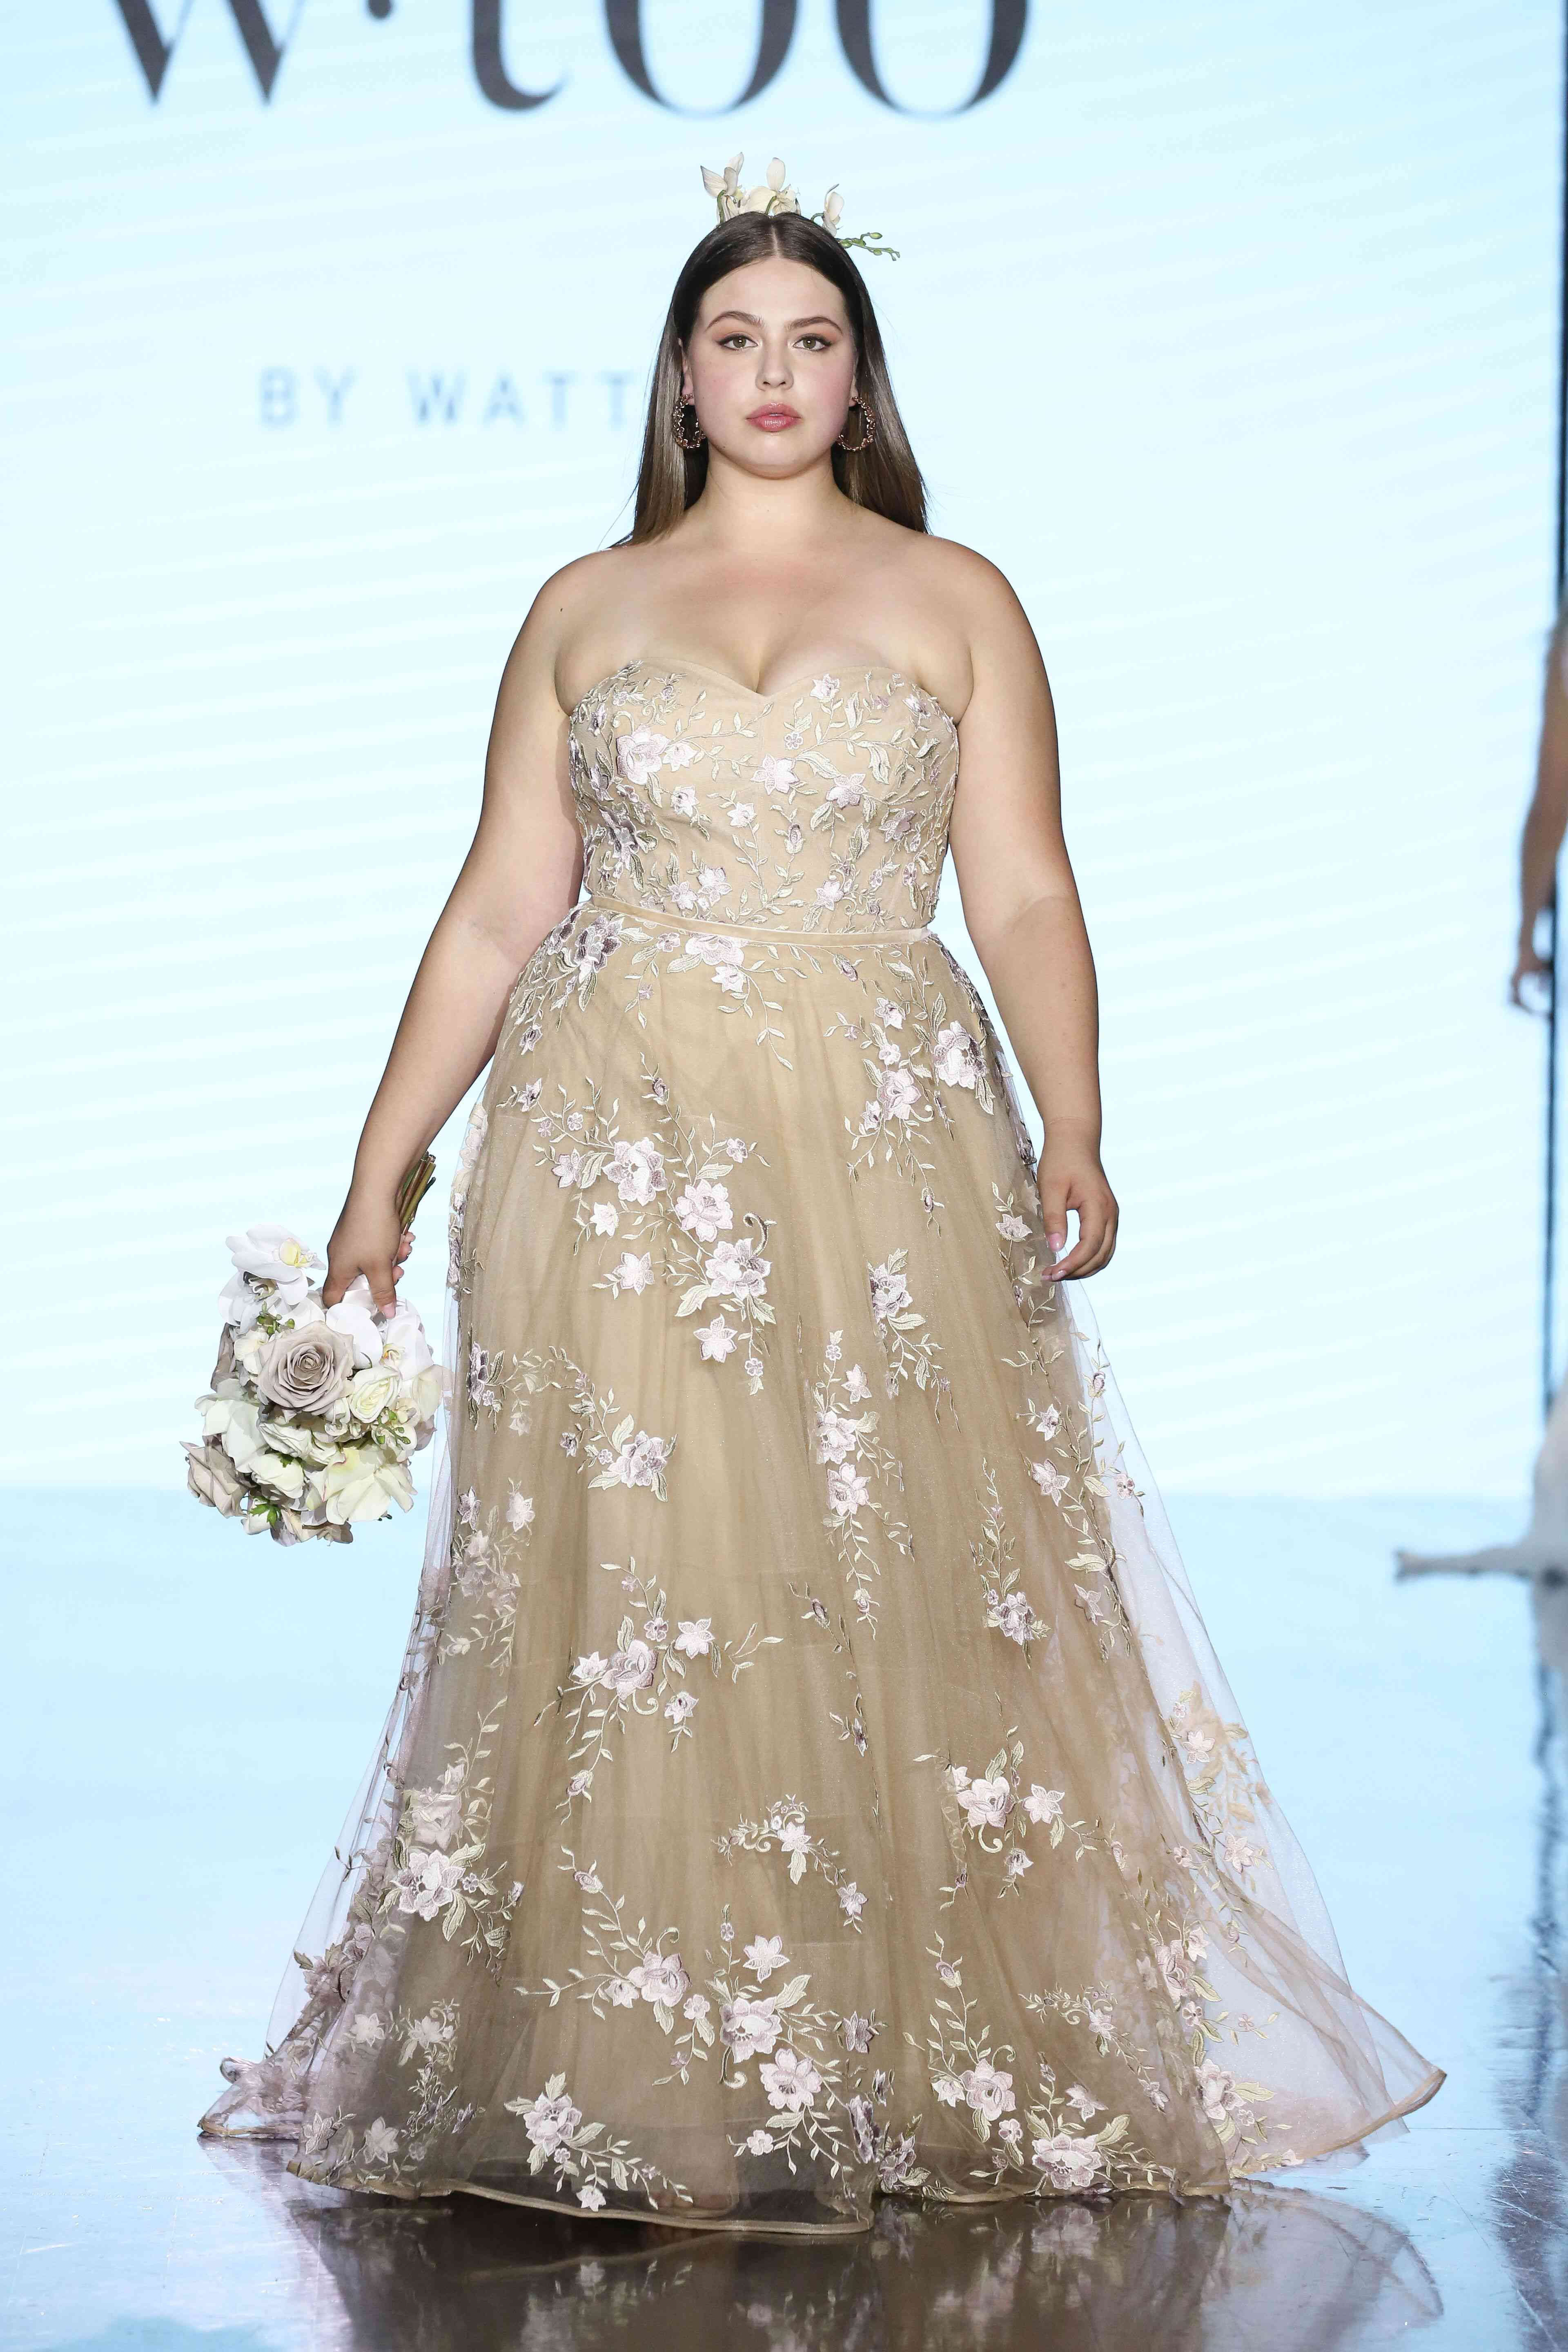 Model in strapless gold tulle ballgown with floral appliques